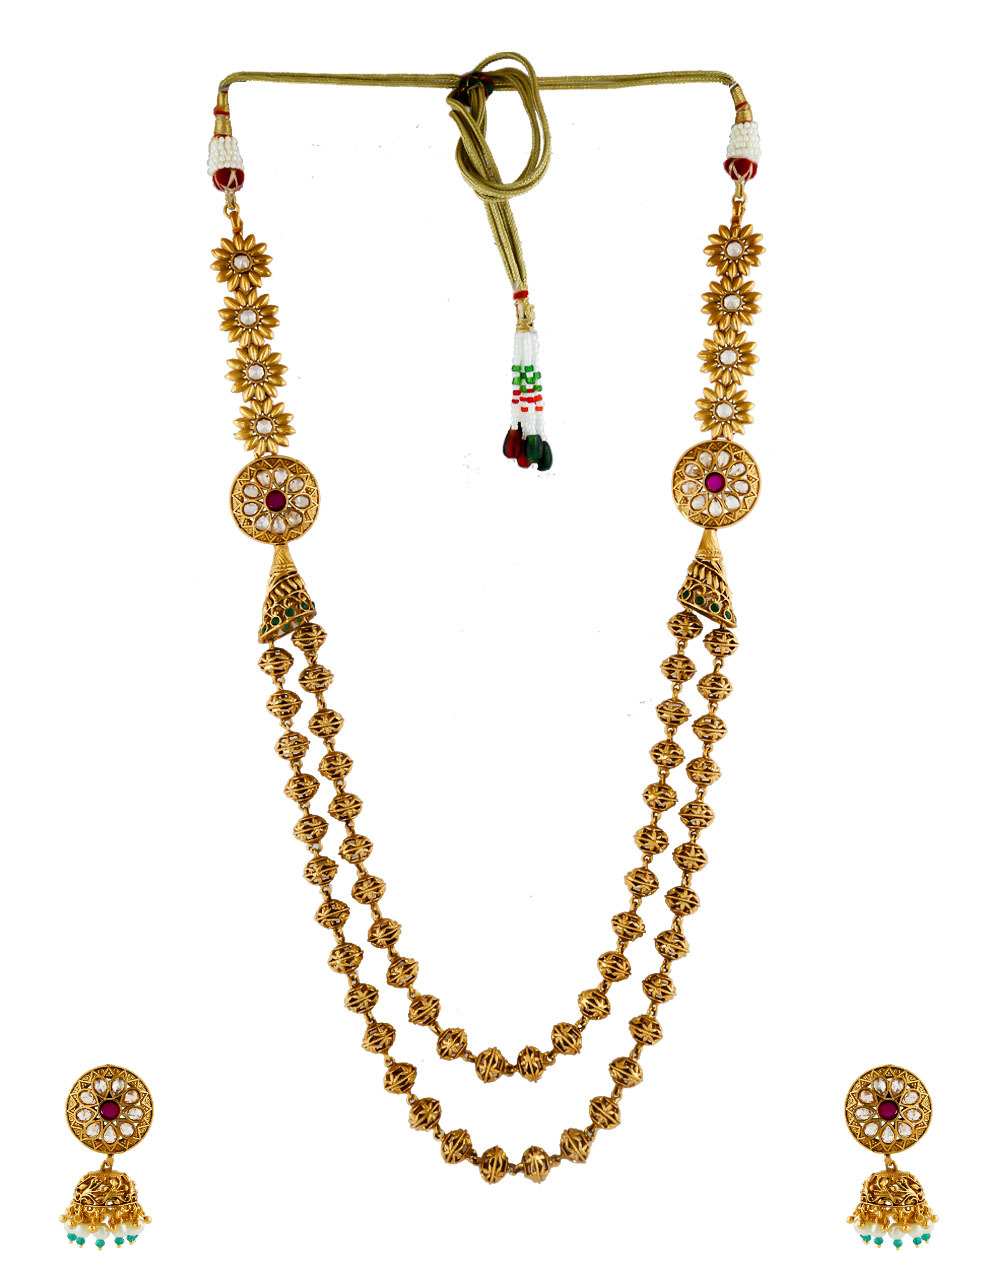 Antique Gold Finish Stunning Floral Design Long Necklace Mala